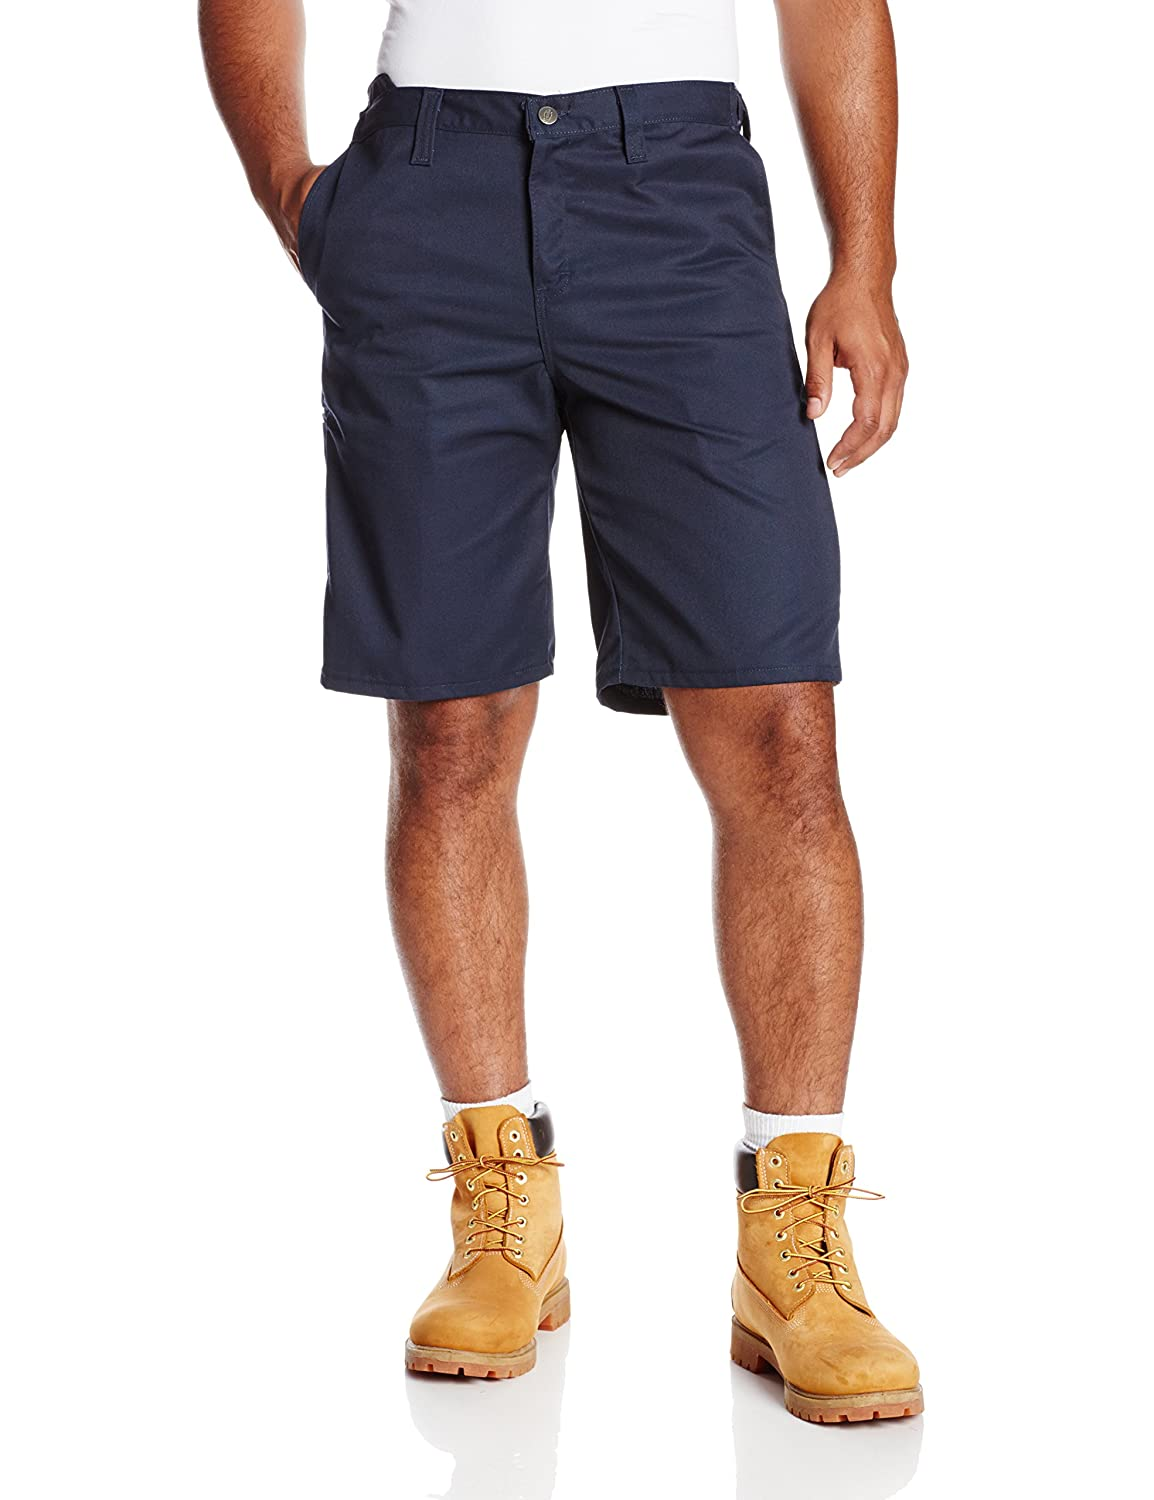 """Dickies Occupational Workwear LR700NV 31 Polyester/ Cotton Relaxed Fit Men's Premium Industrial Comfort Waist Short with Metal Tack Closure, 31"""" Waist Size, 11"""" Inseam, Navy"""